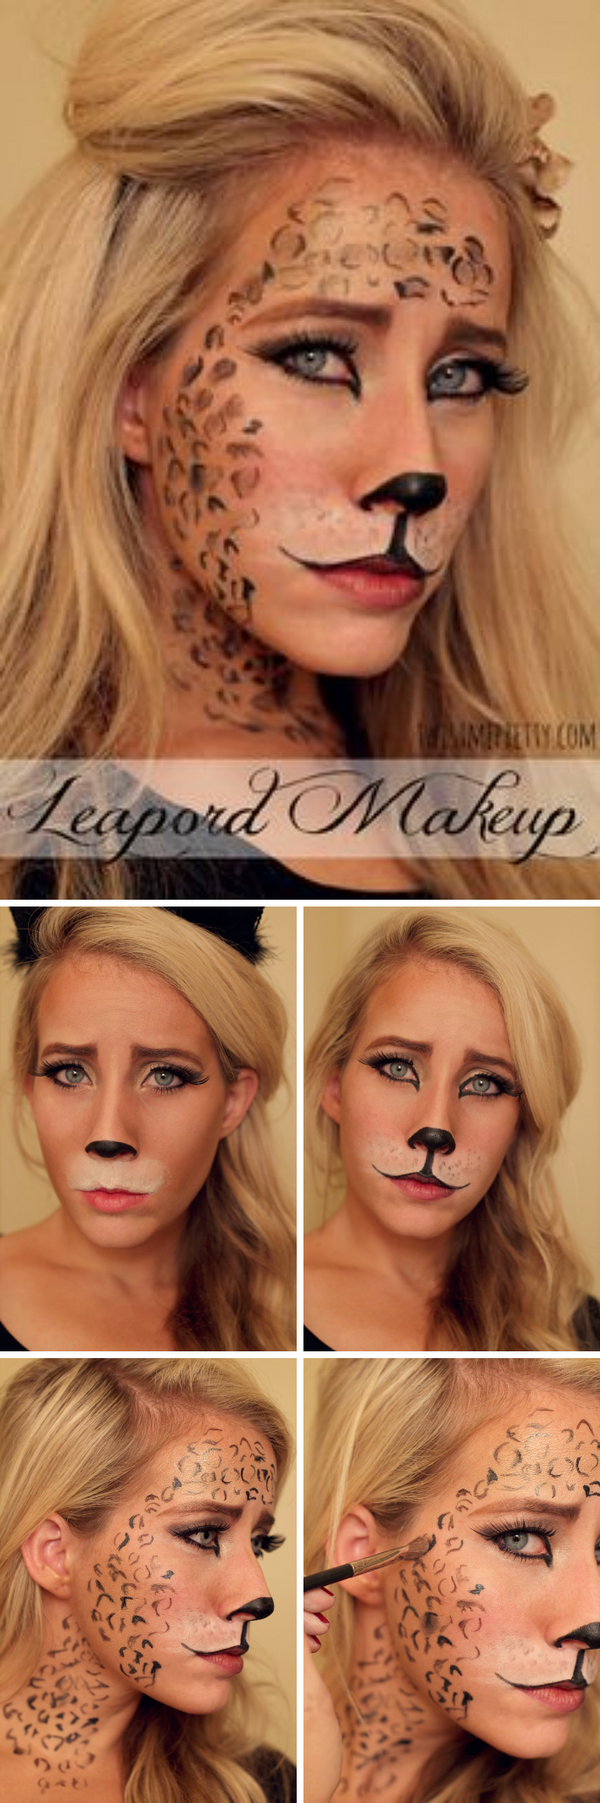 25 super cool step by step makeup tutorials for halloween hative leopard makeup tutorial baditri Image collections